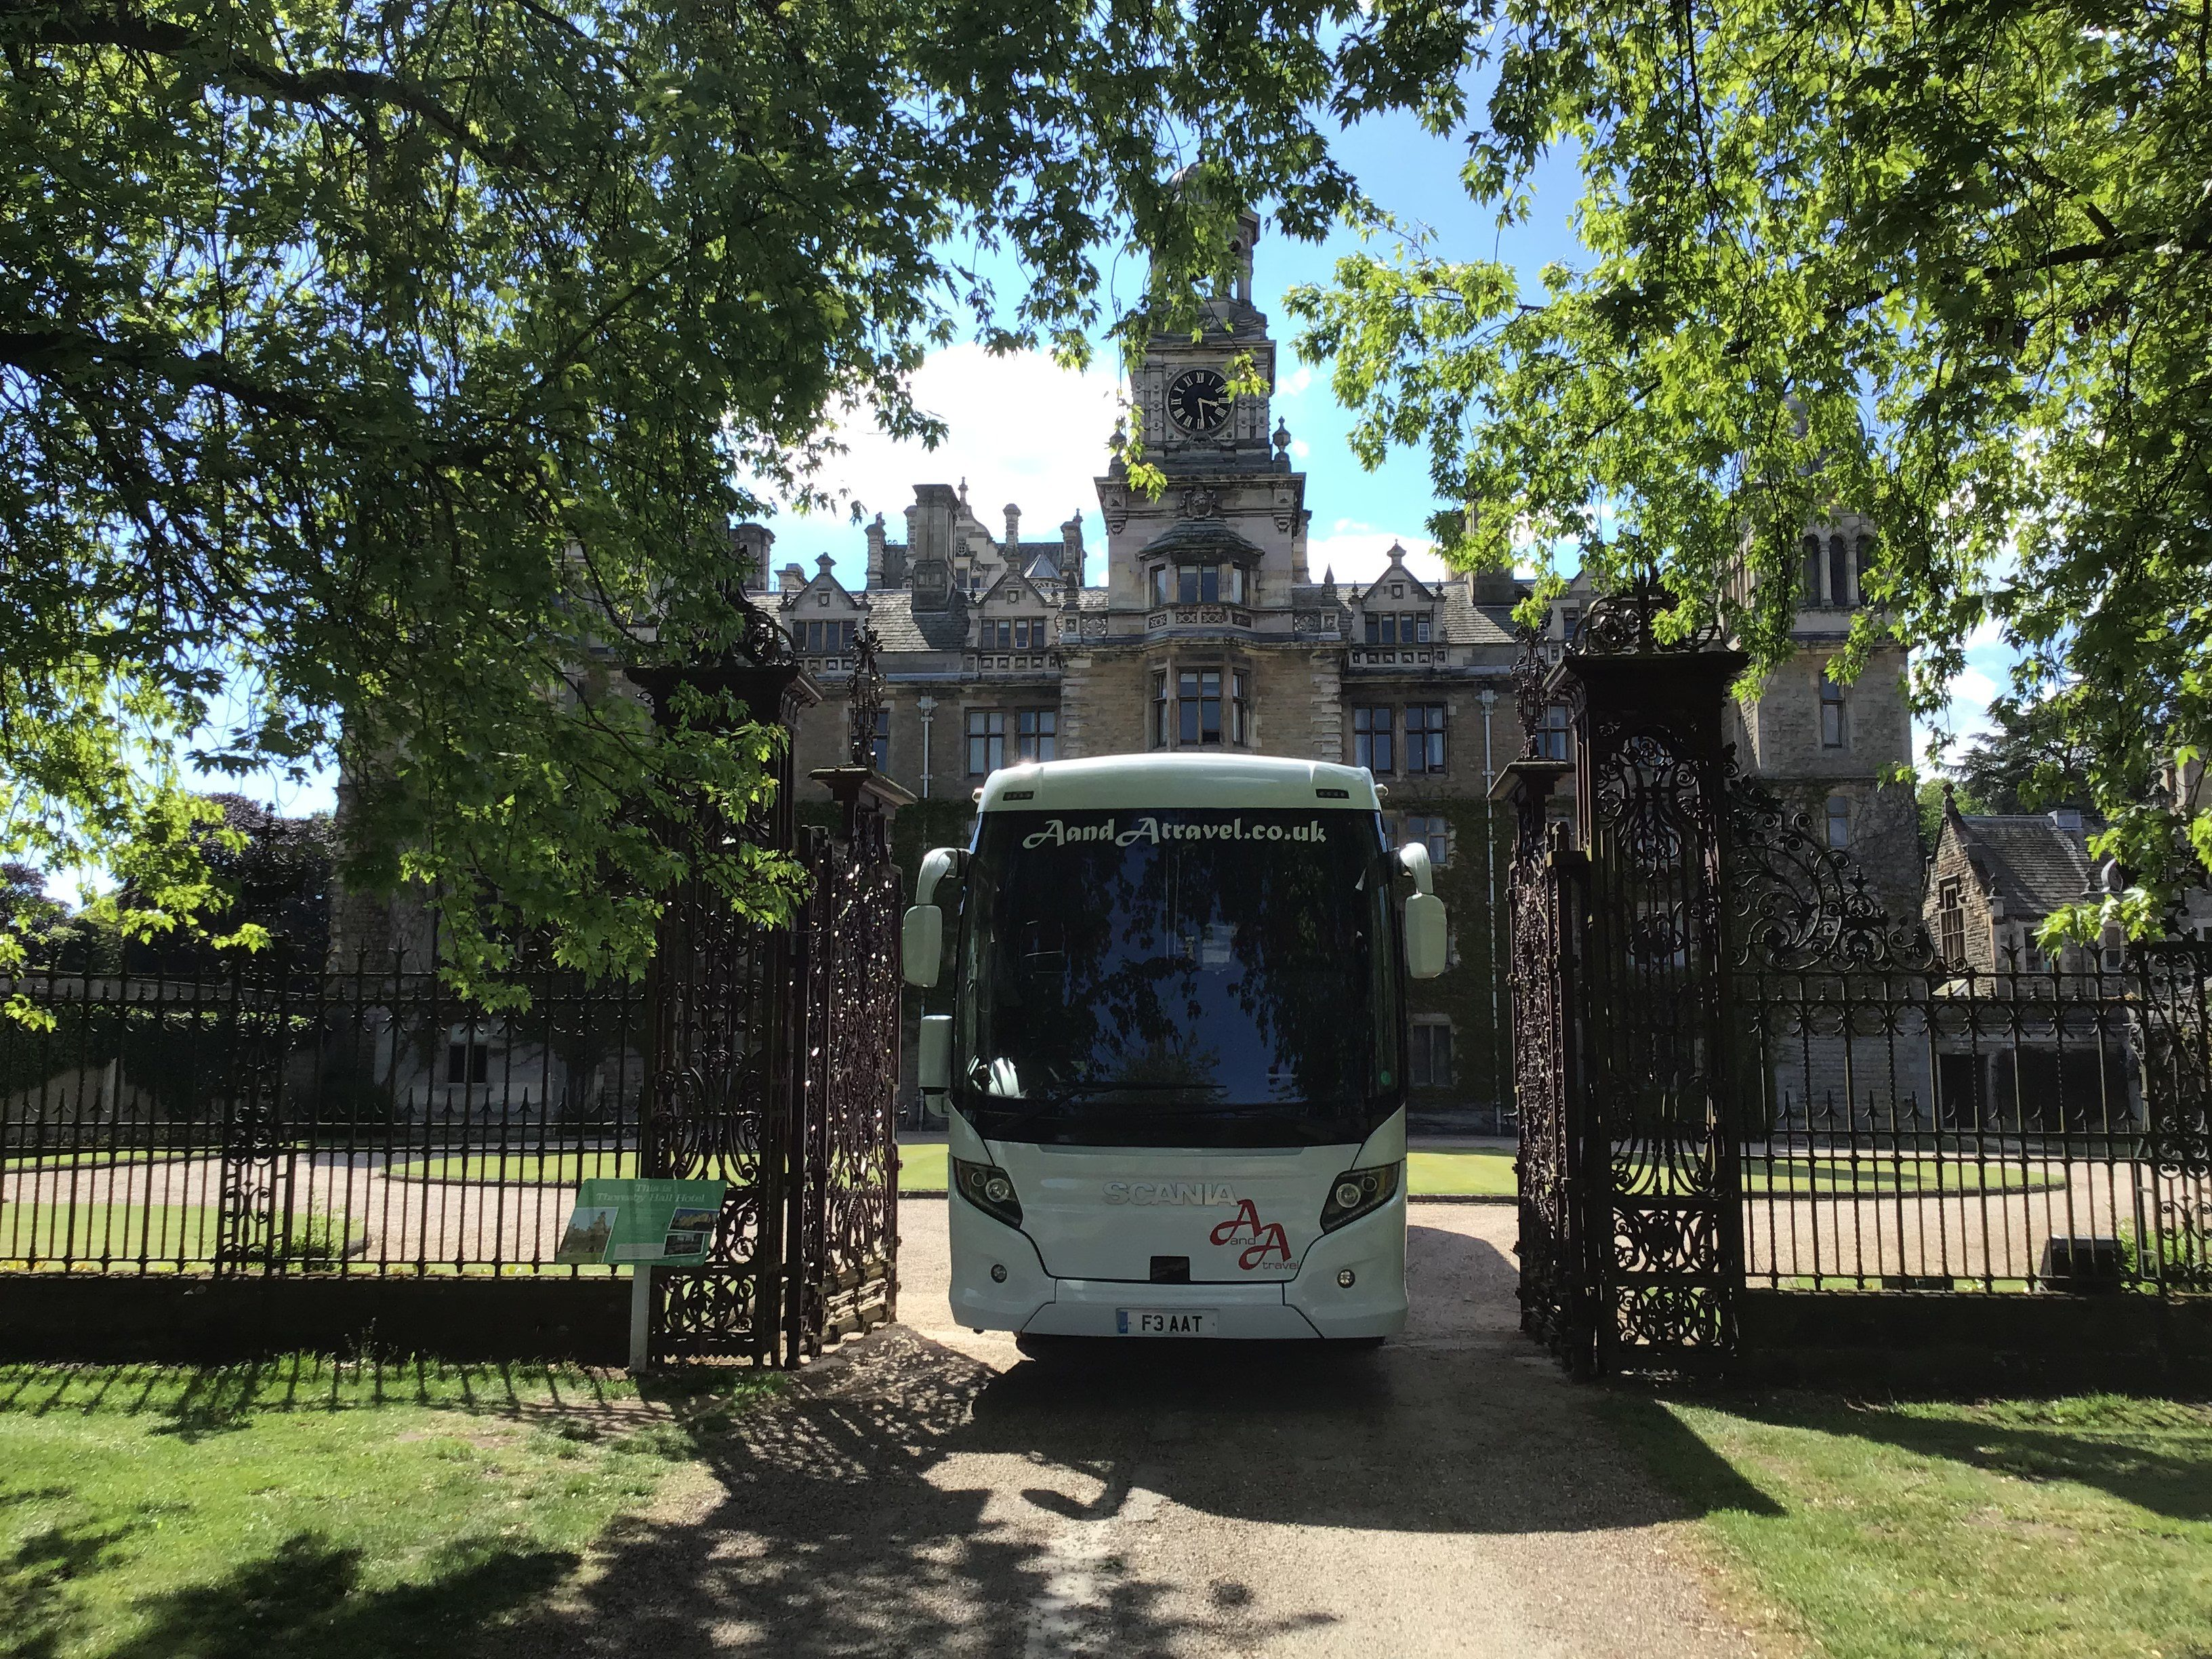 57 Seater Executive Coach Hire